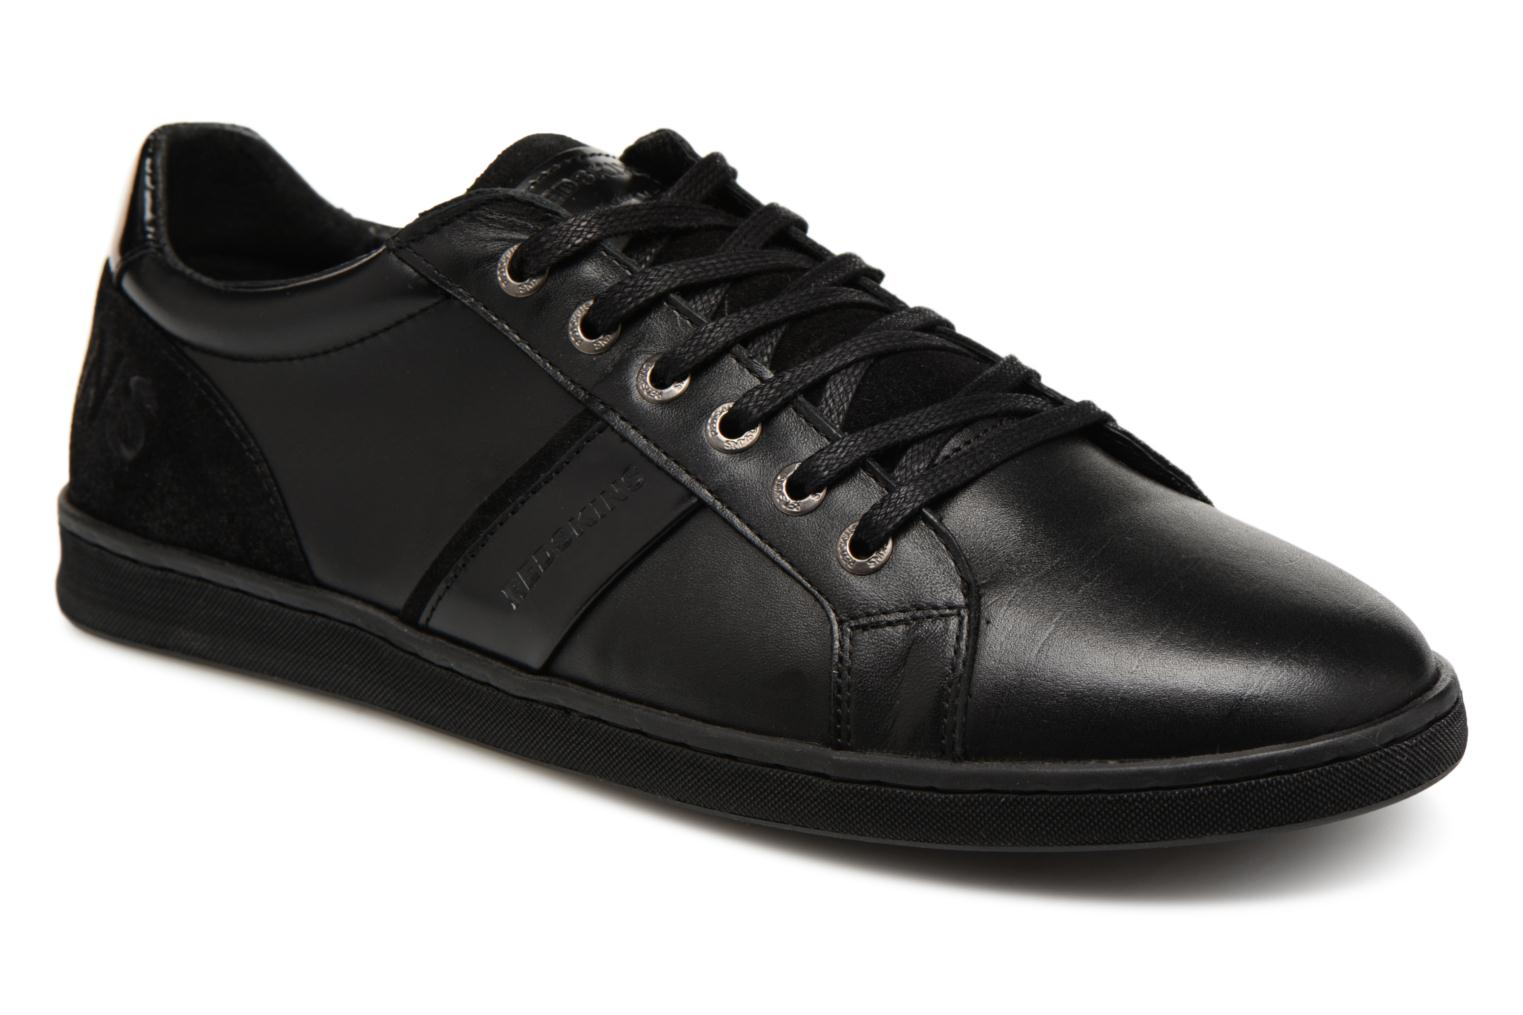 Sneakers Ottens by Redskins